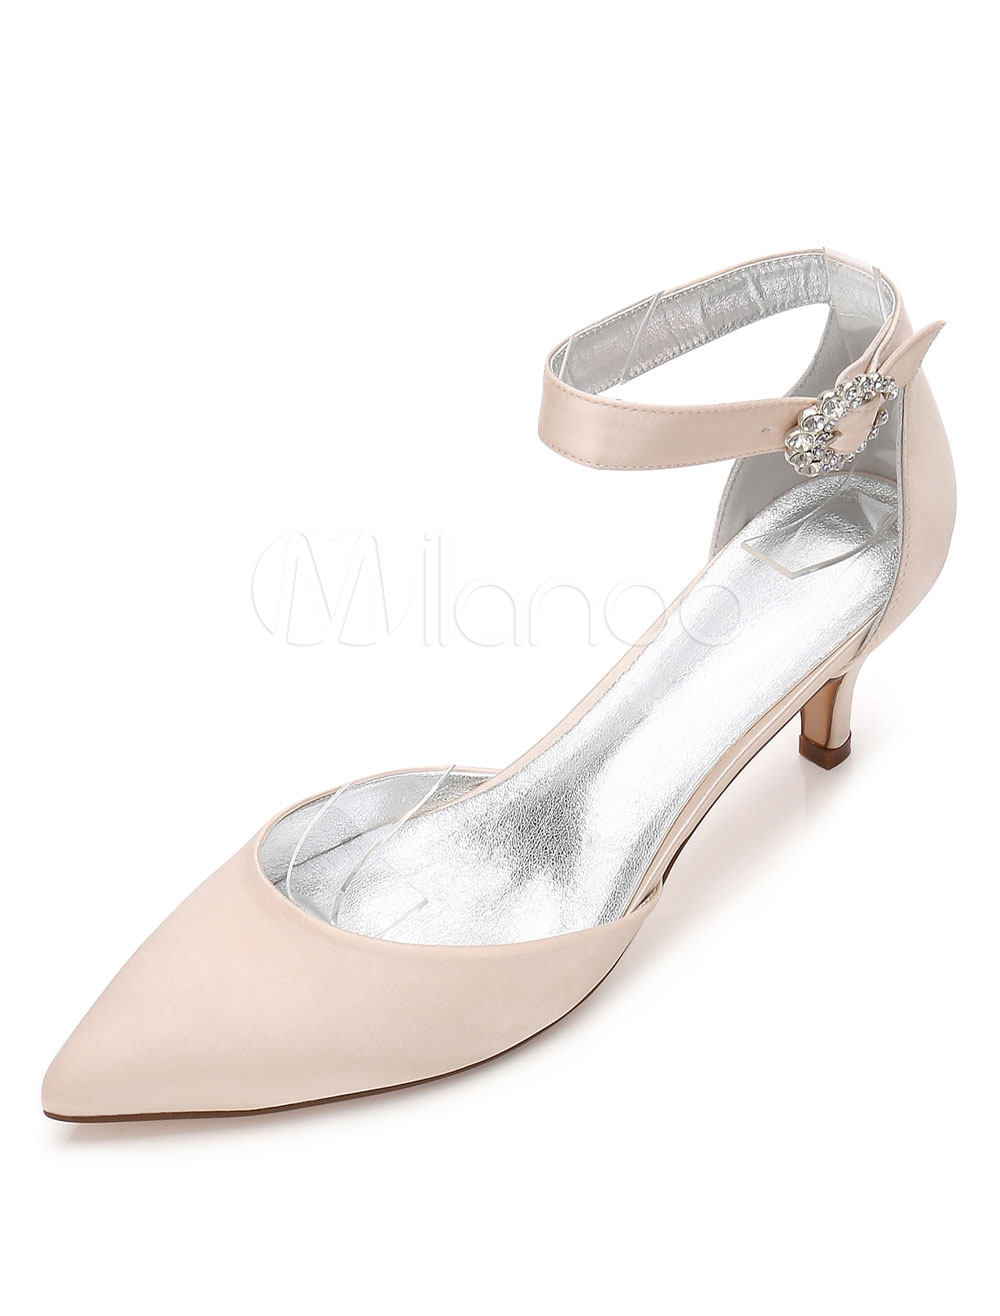 White Wedding Shoes Satin Pointed Toe Rhinestones Ankle Strap Kitten Heel Bridal Shoes